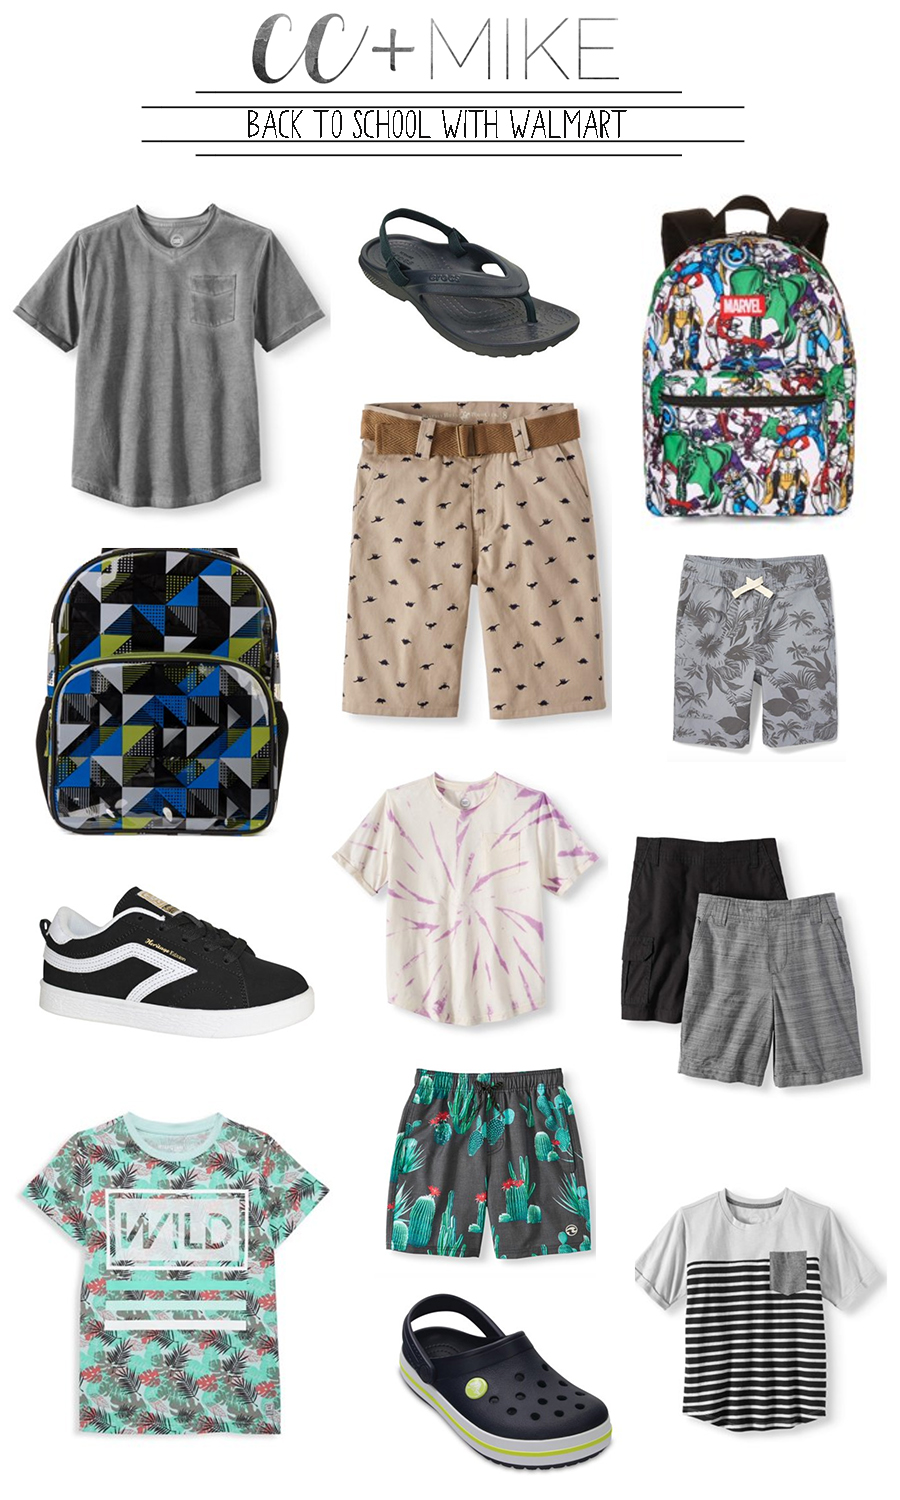 Back to School with Walmart affordable boys and girls back to school clothes